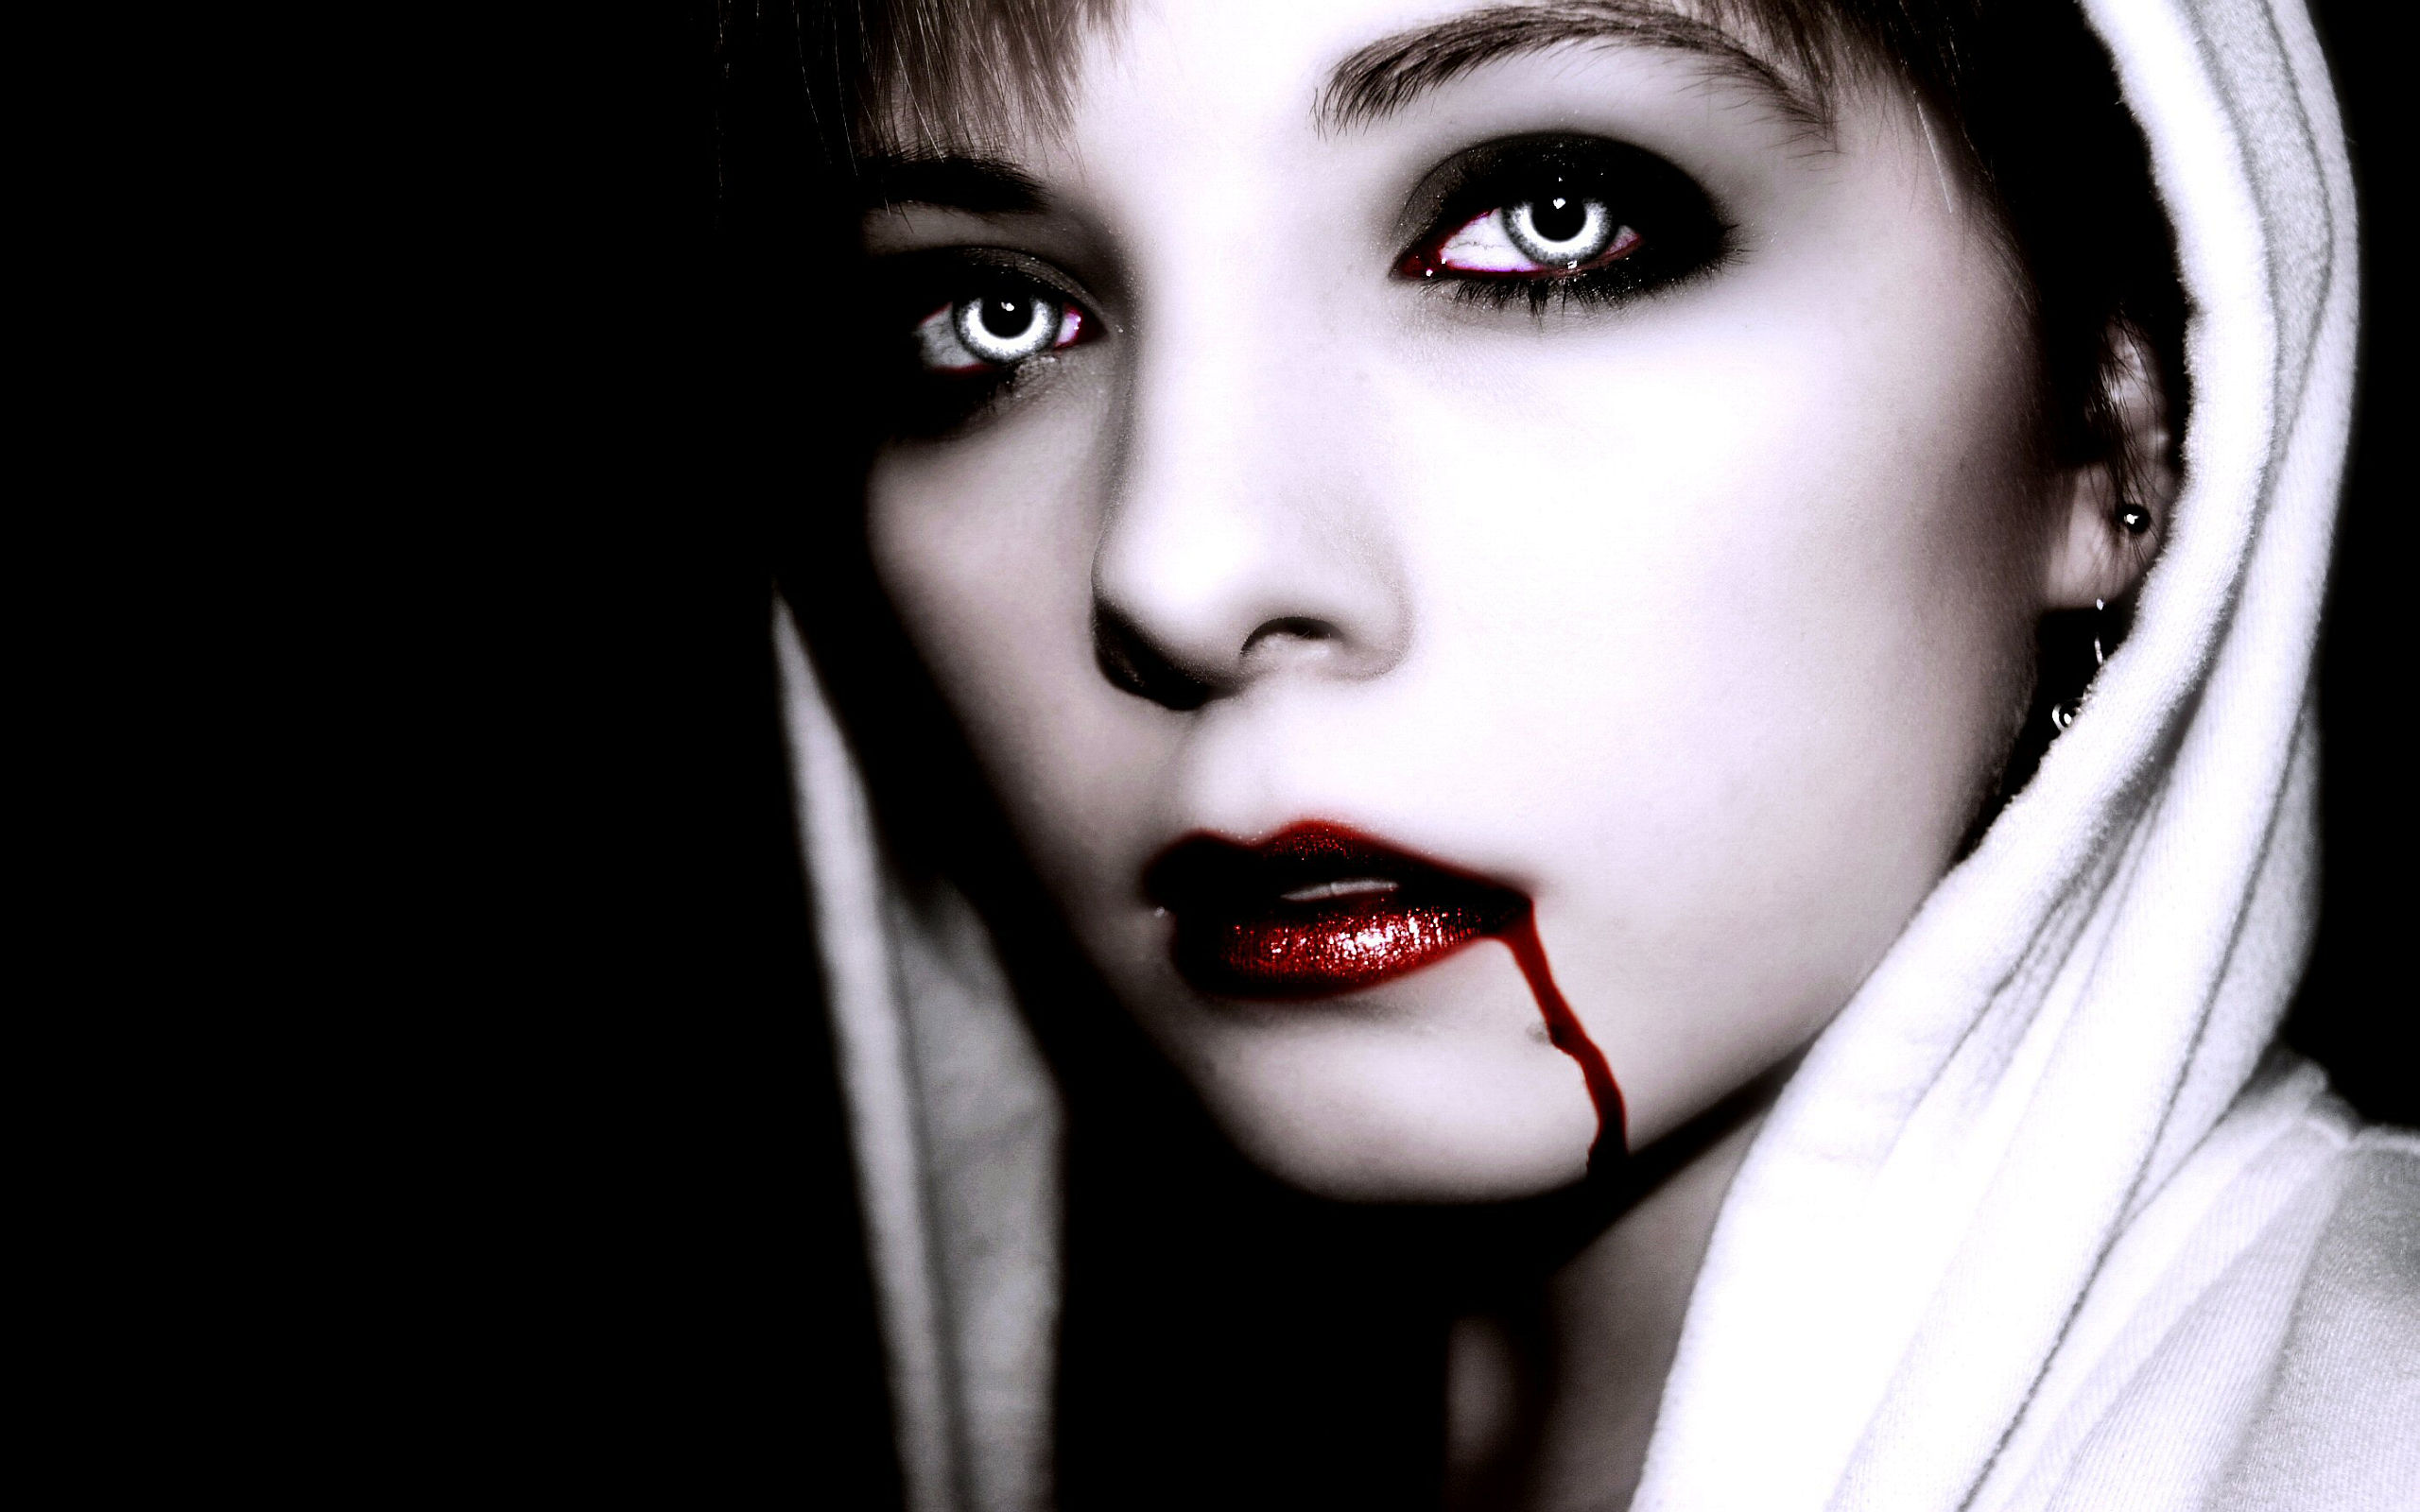 161 Vampire HD Wallpapers | Backgrounds - Wallpaper Abyss